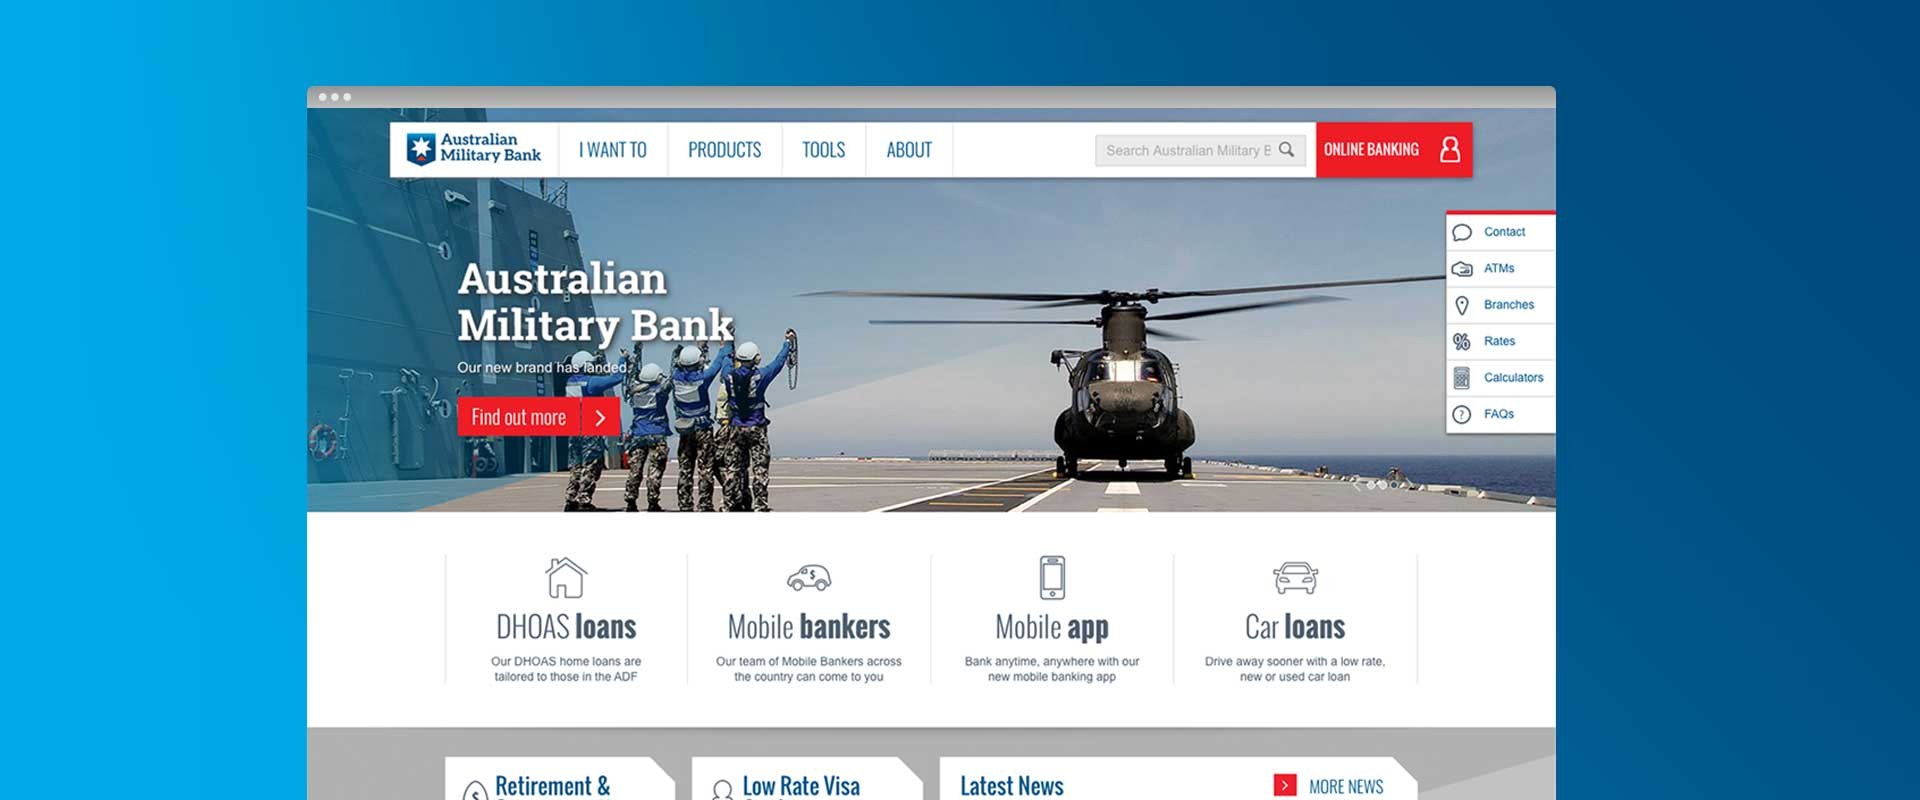 Website Design Agency, Percept, specialist in creative Website Design Sydney demonstrated in projects for all types of company, business, brand or product in Australia, image 08